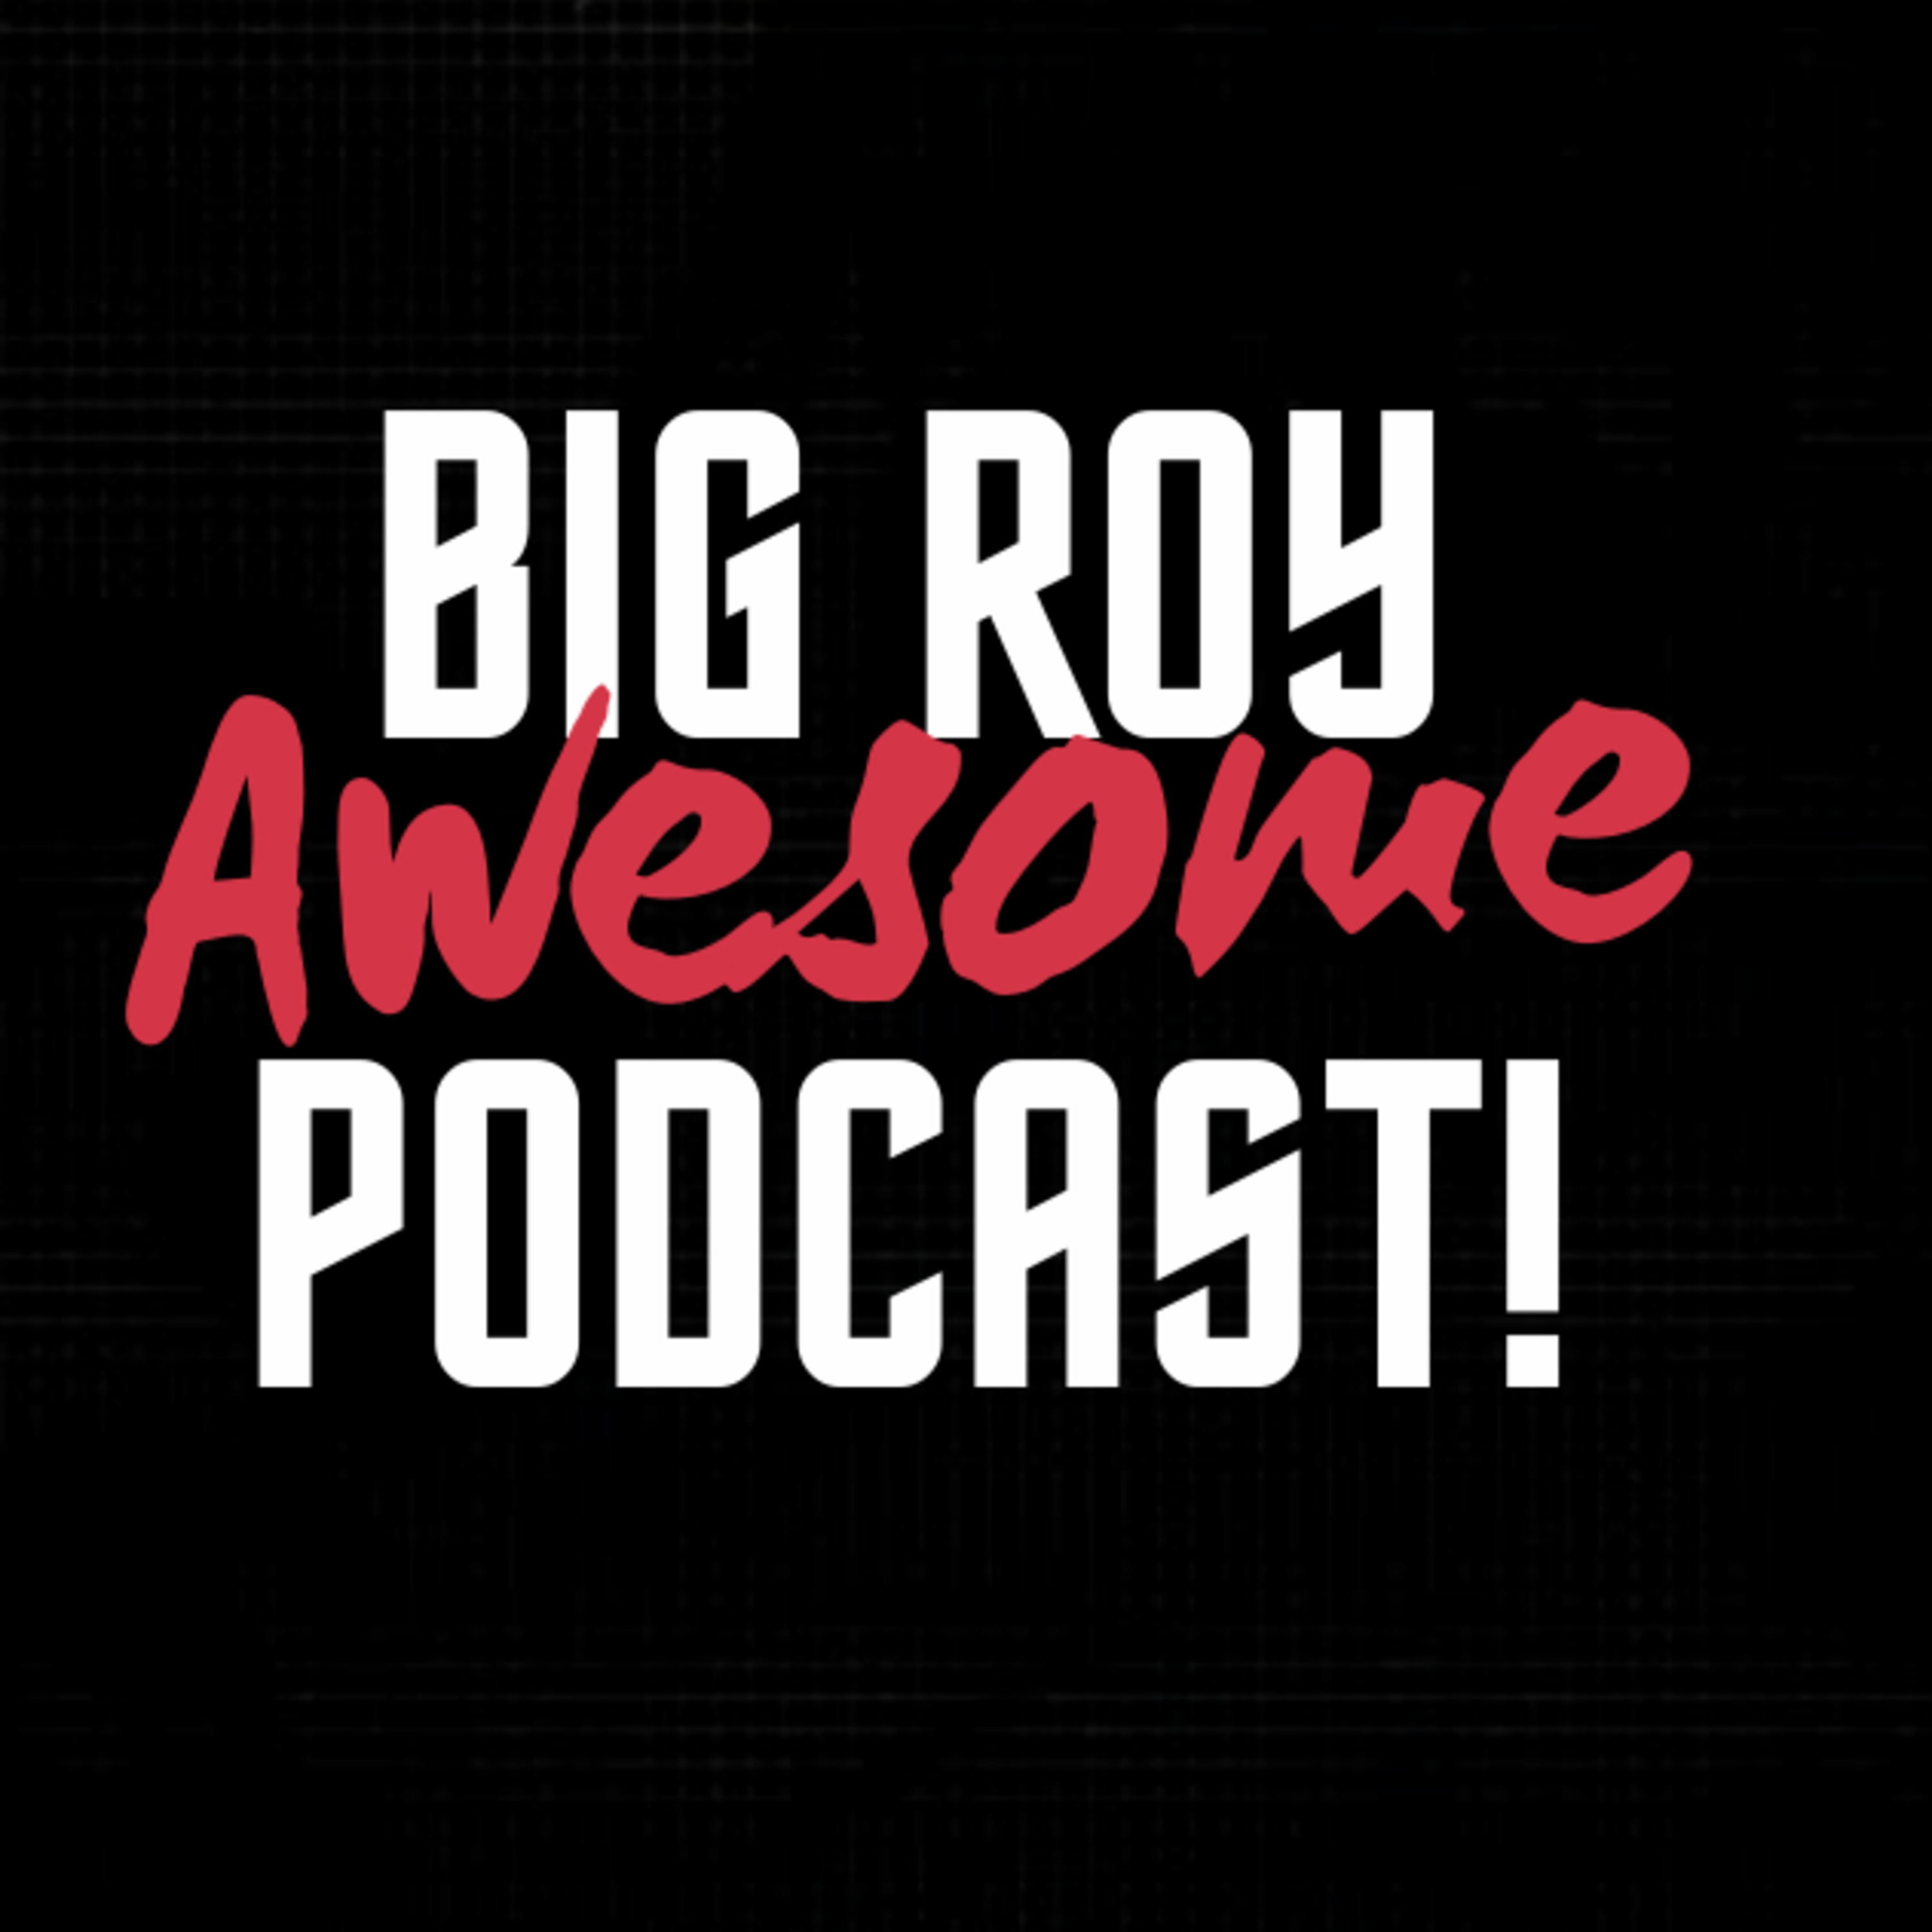 Big Roy Awesome Podcast Episode 3 - ISO8 Reloaded